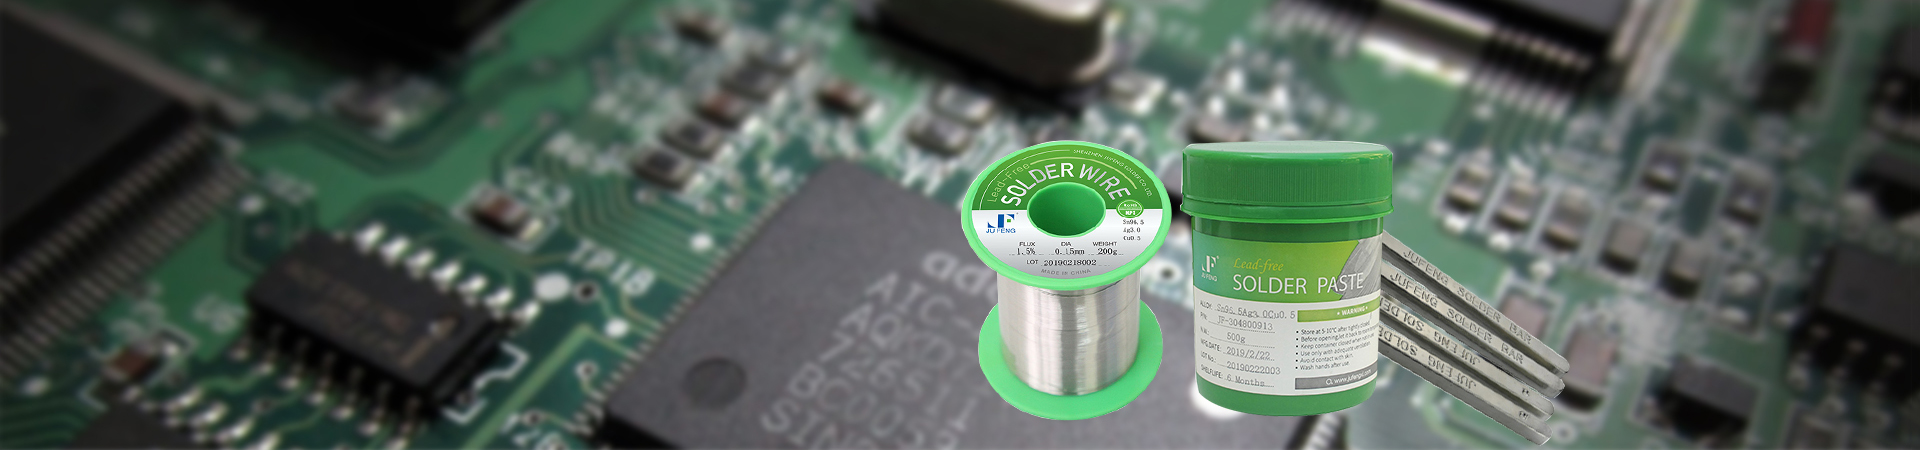 Shenzhen Jufeng Solder Co., Ltd.